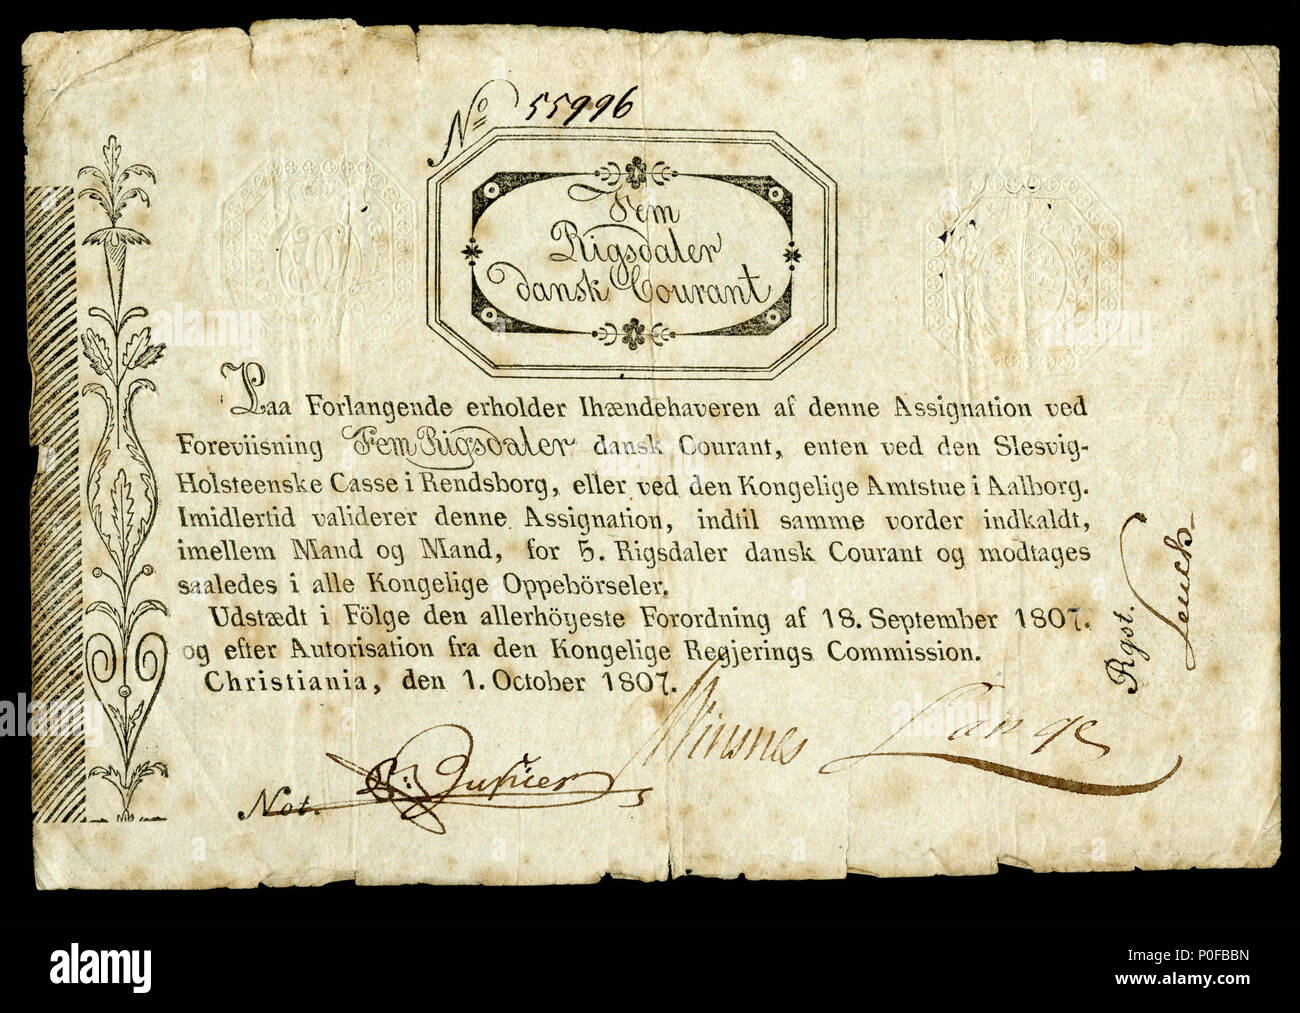 . English: Kingdom of Norway, Regerings Kommission, 5 Rigsdaler Courant (1807). Norway circulated one issue of paper currency in 1695 and following a hiatus of just over a century, resumed issuing banknotes in 1807. 'On request, relieve the bearer of this instrument by presenting five rigsdaler dansk courant, either through the Schleswig-Holstein Cashier's Office in Rendsborg or through the Royal District Office in Aalborg. Meanwhile validate this instrument until the same be called for, between man and man, for five rigsdaler dansk courant and receive it thus in all Royal revenues. Issued acc Stock Photo